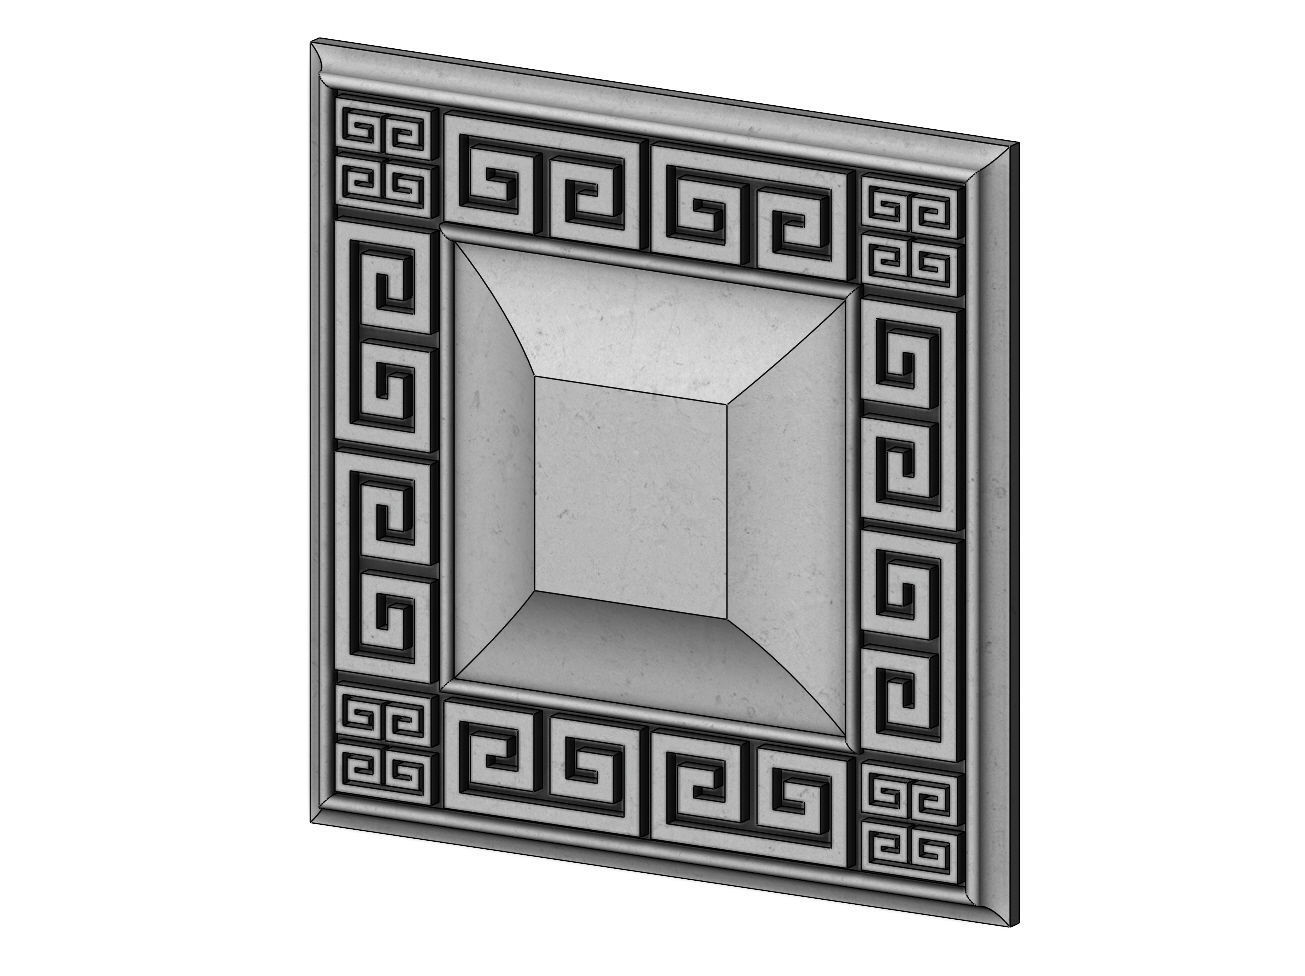 Greek key ceiling medallion and tile